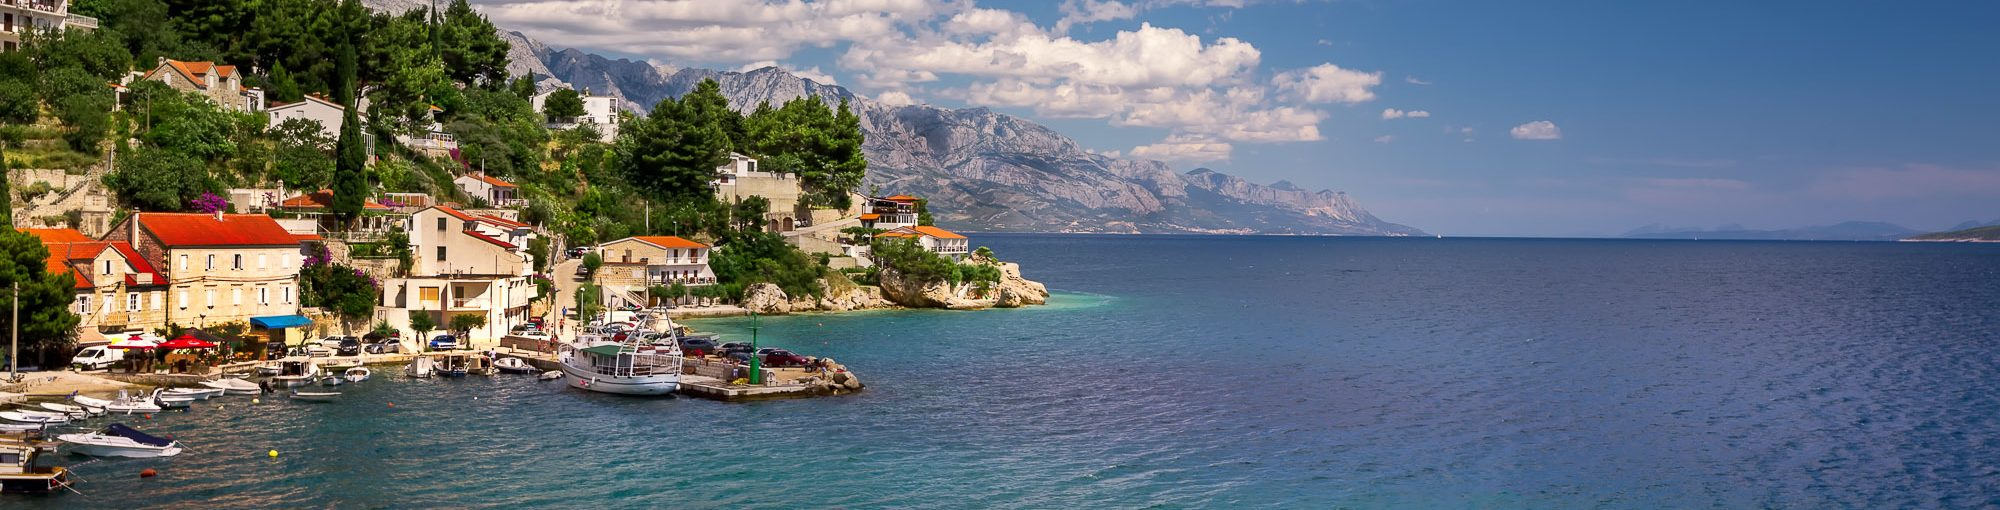 There's no better way to discover the beauty of Croatian Coast than by day trip cruising!